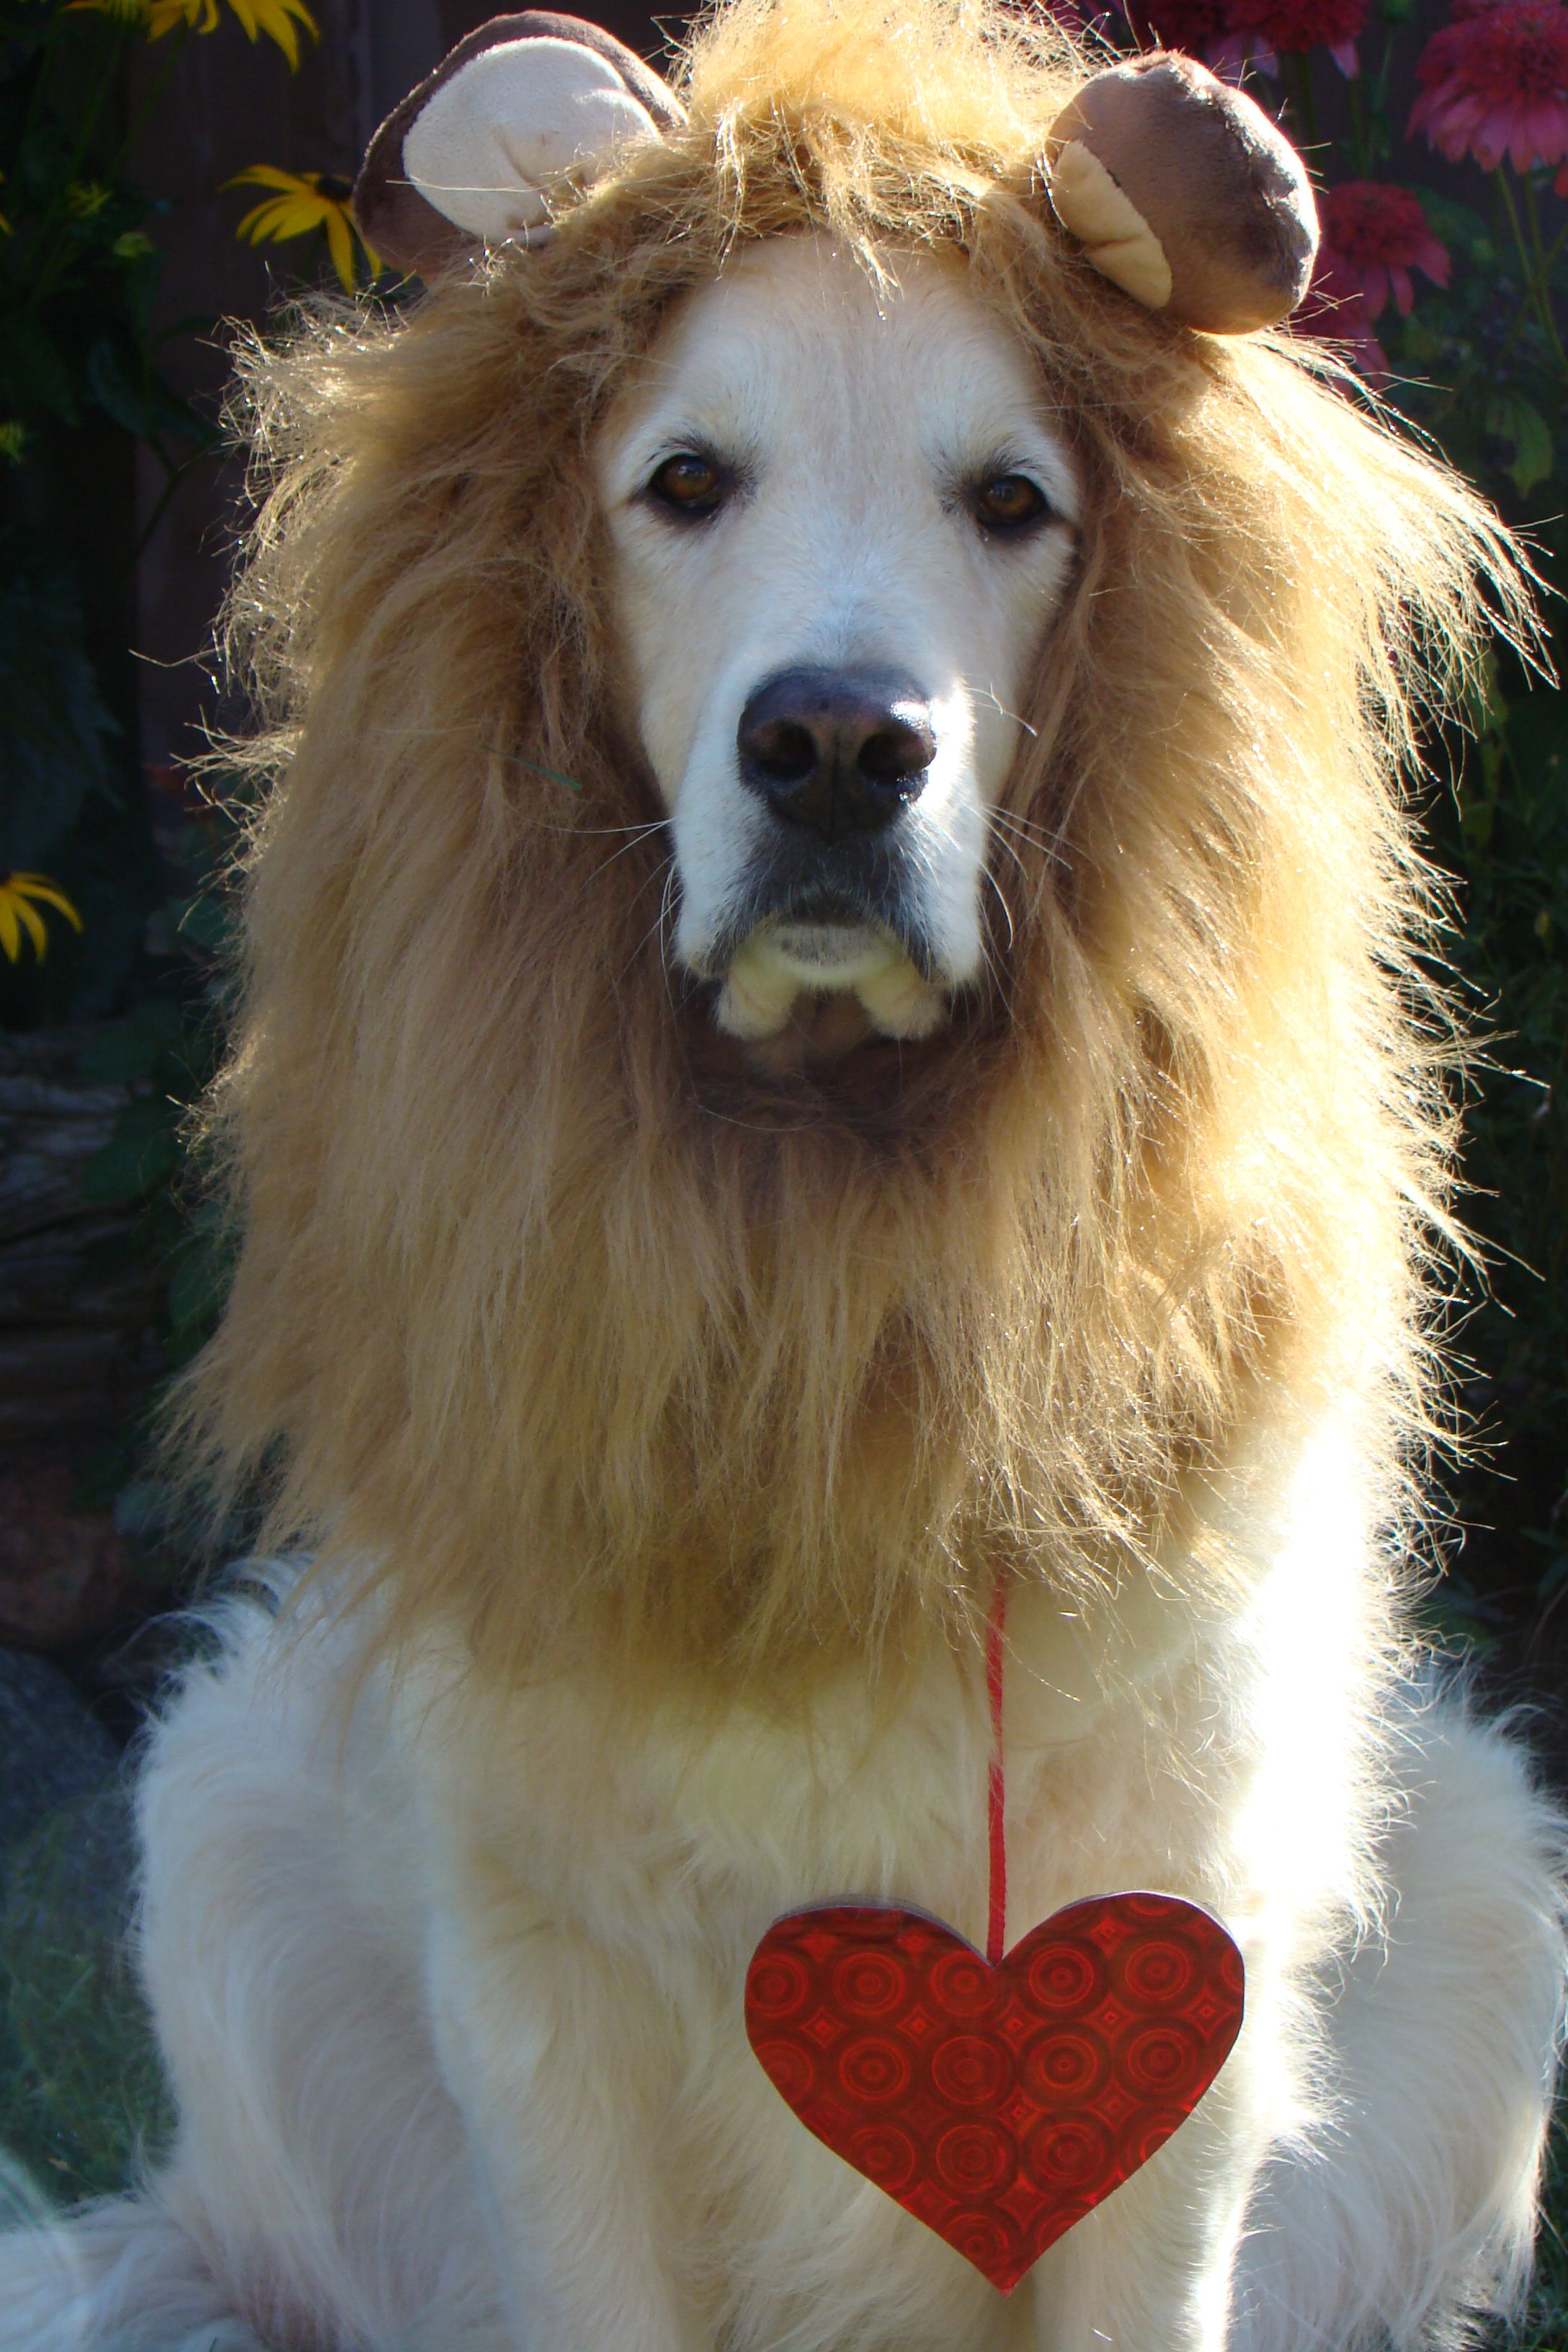 Bentley posing as the cowardly lion from Wizard of Oz with a heart ...